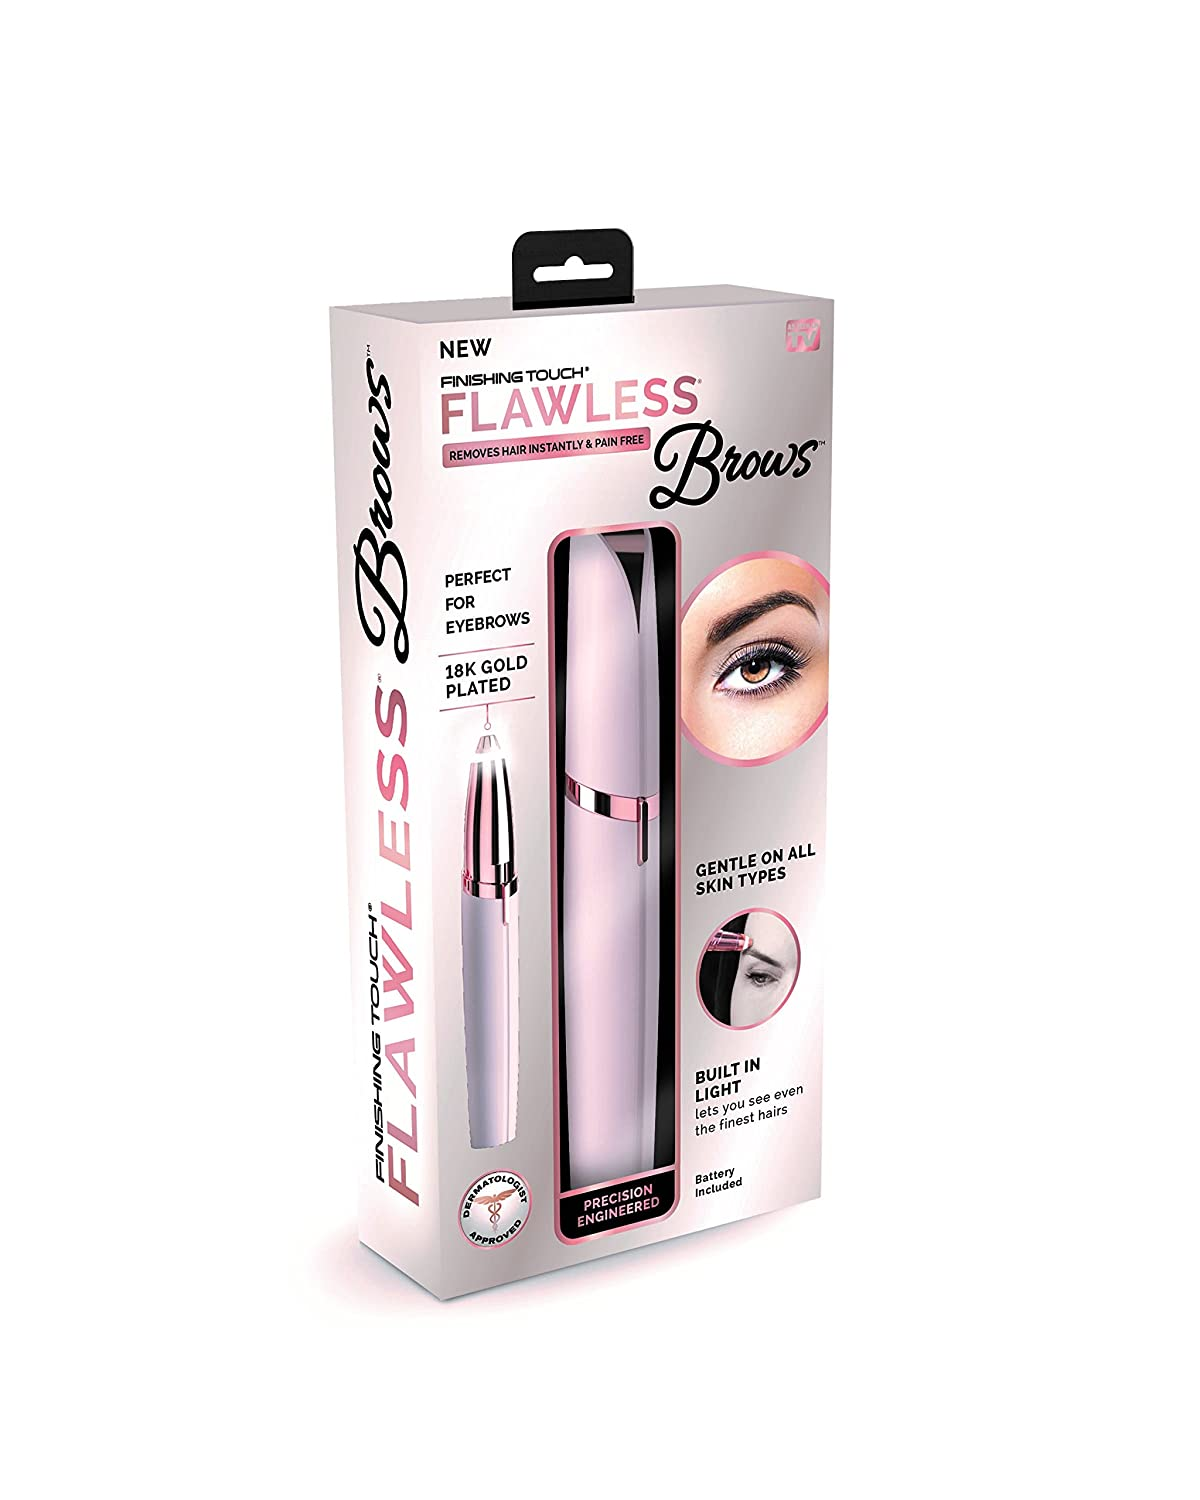 FLAWLES EYEBROW TRIMMER + FACIAL HAIR REMOVER ( COMBO OFFER )